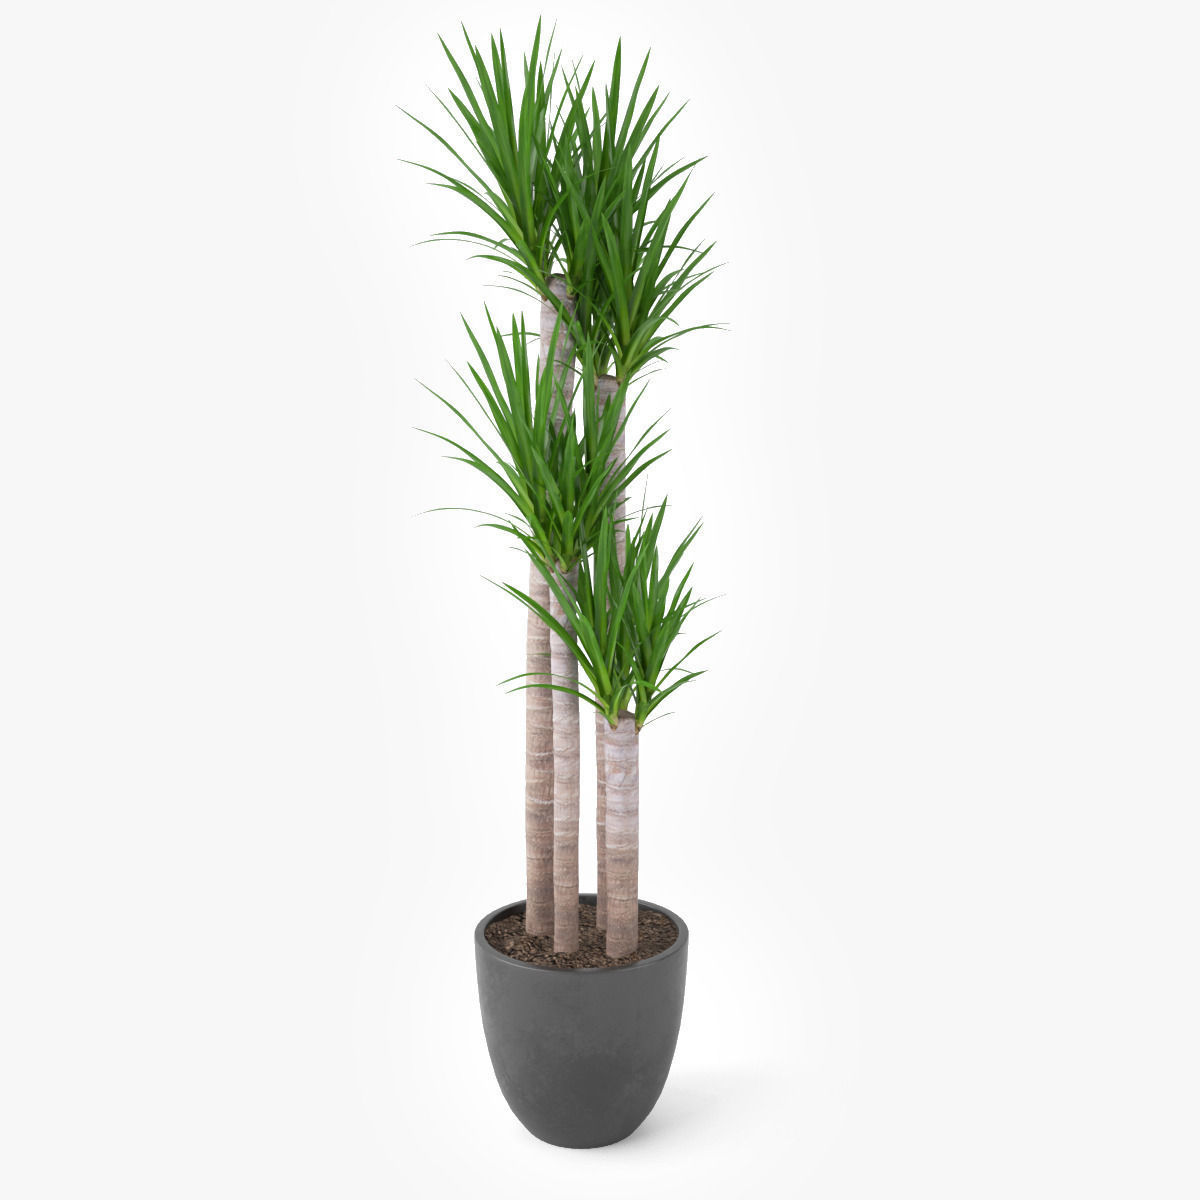 Artificial Areca Palm Tree Potted Plants Artificial Chrysalidocarpus Lutescens Bonsai Synthetic Indoor Coconut Tree Buy Artificial Chrysalidocarpus Palm Potted Plant Garden Design Ideas